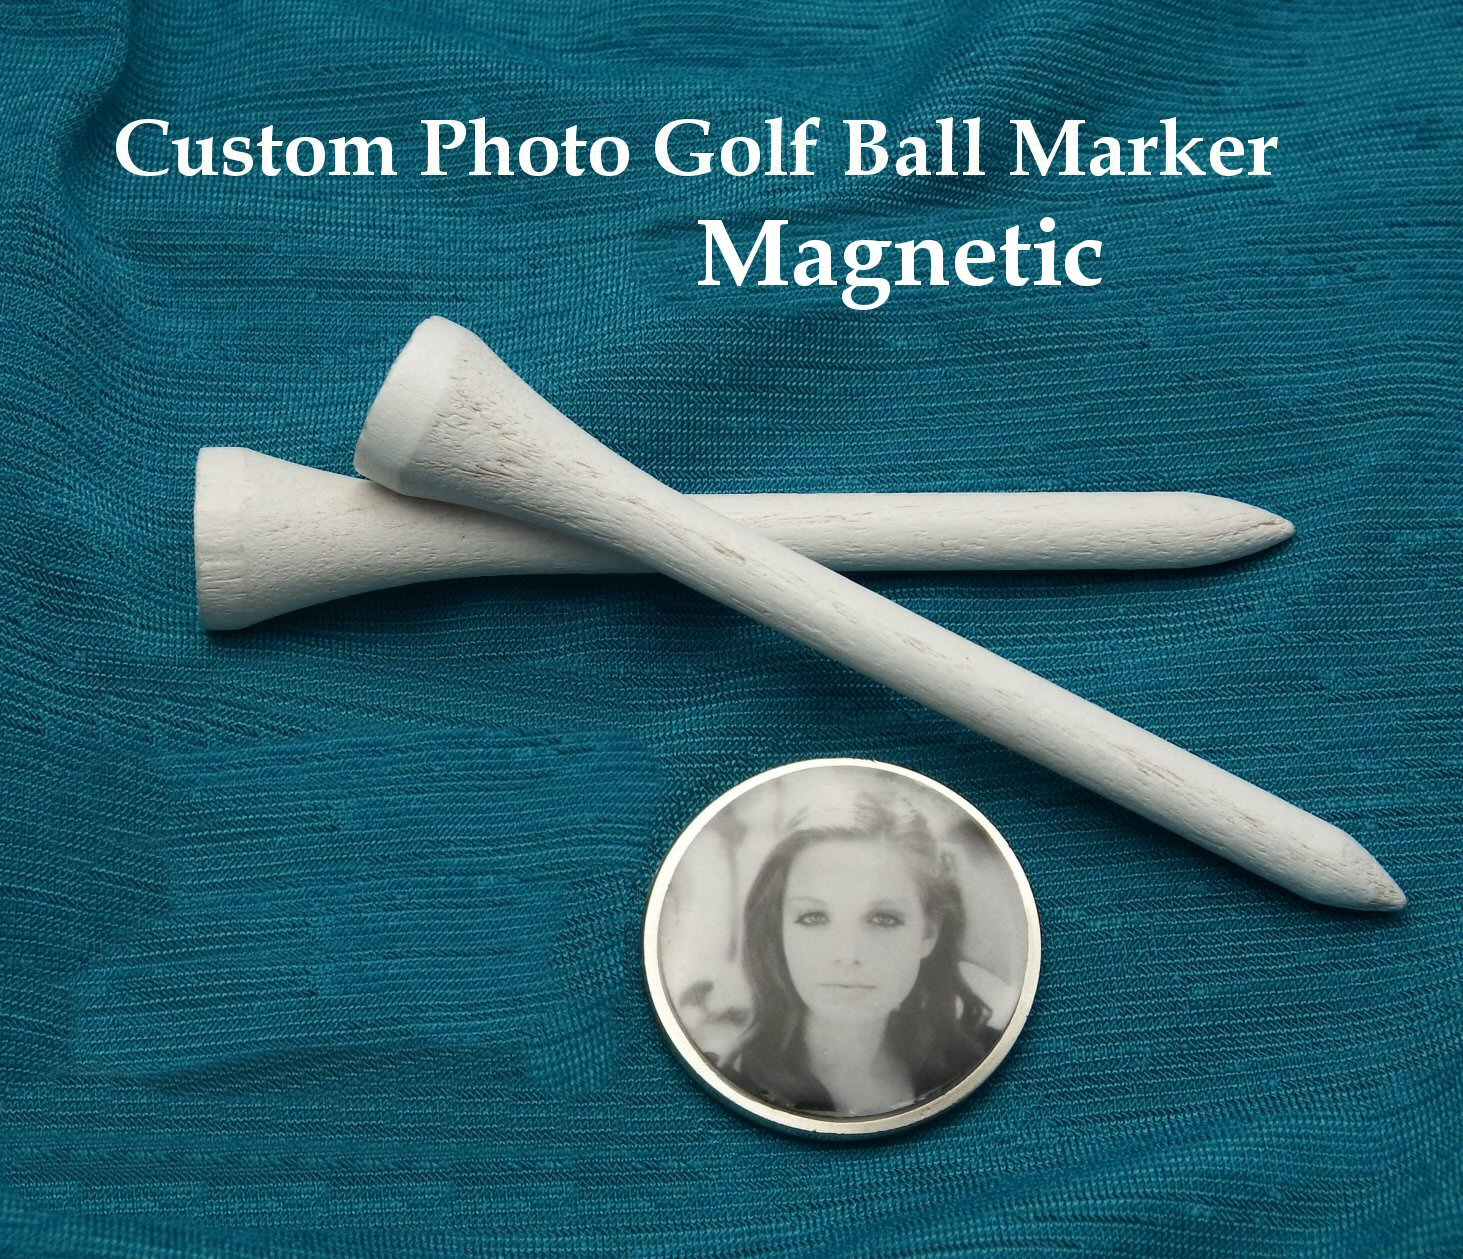 Magnetic Golf Markers